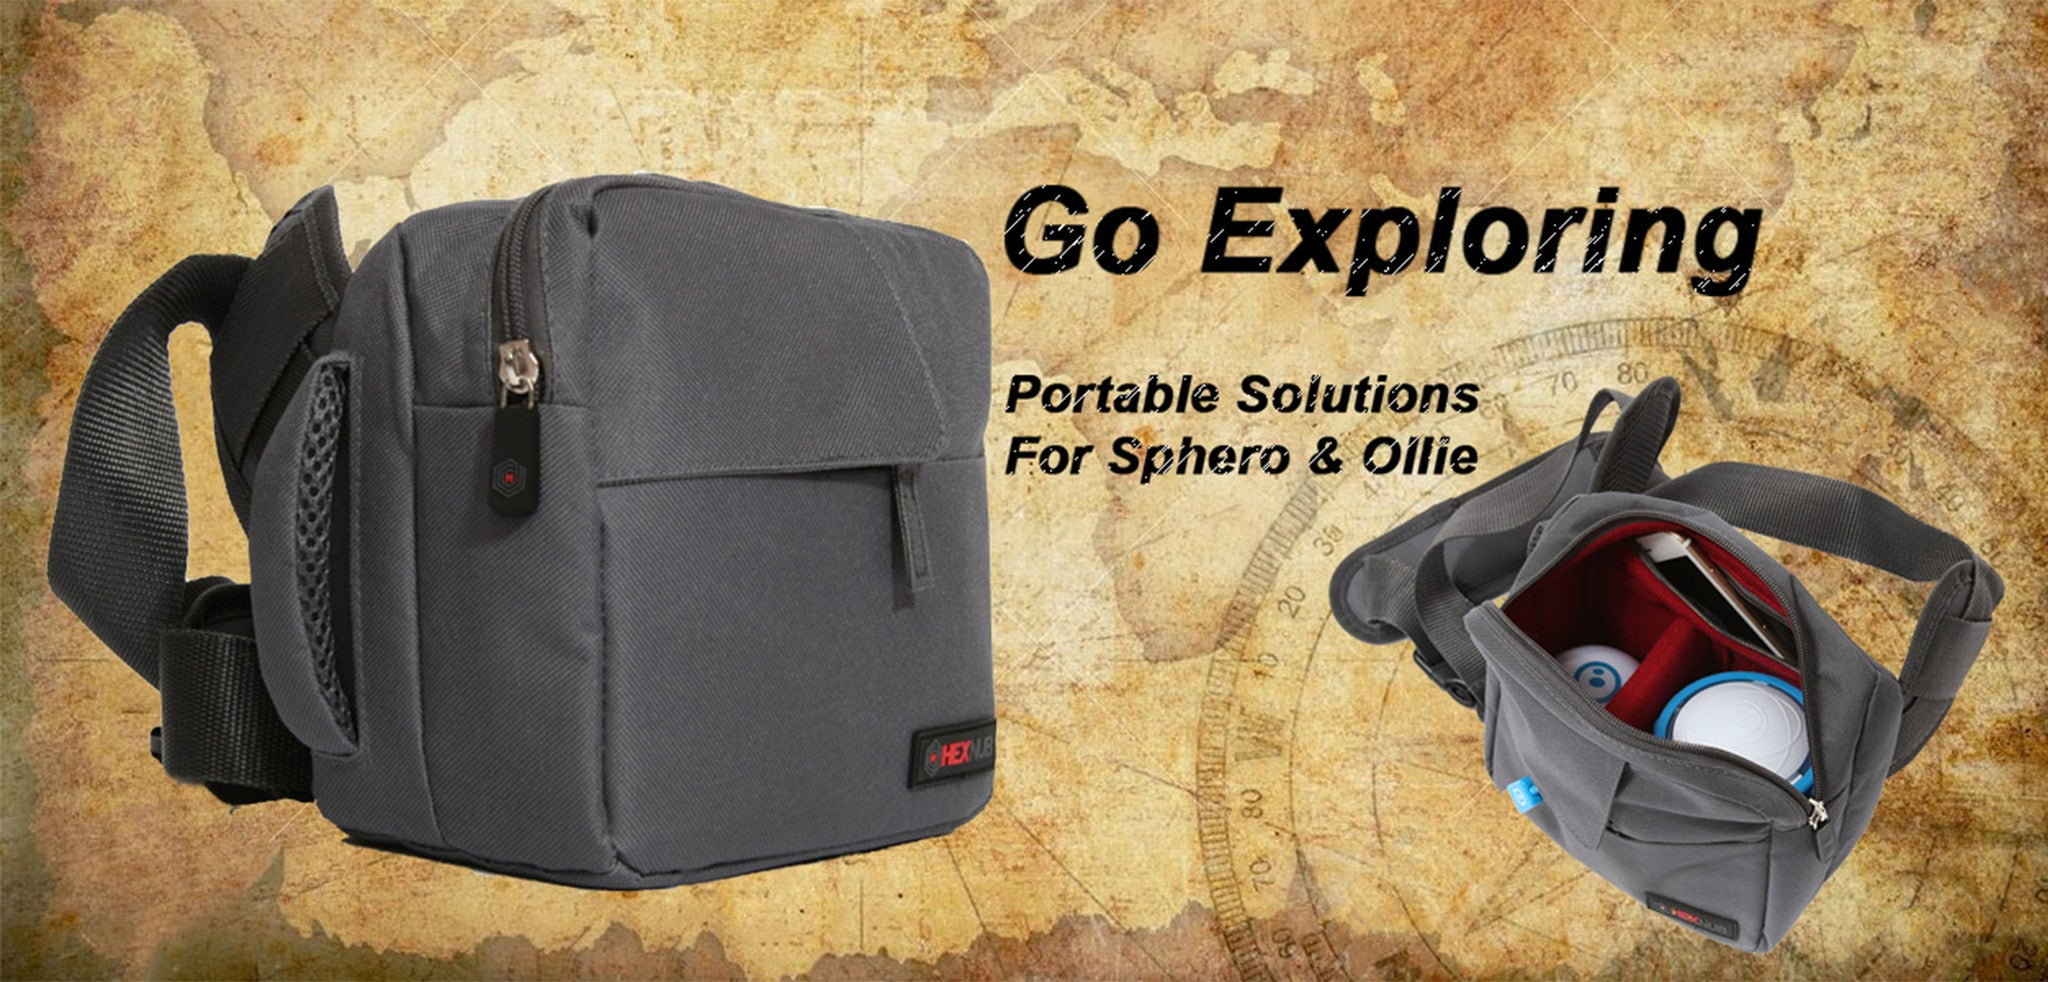 Sphero 2.0 Ollie Accessories Bag 721802180843